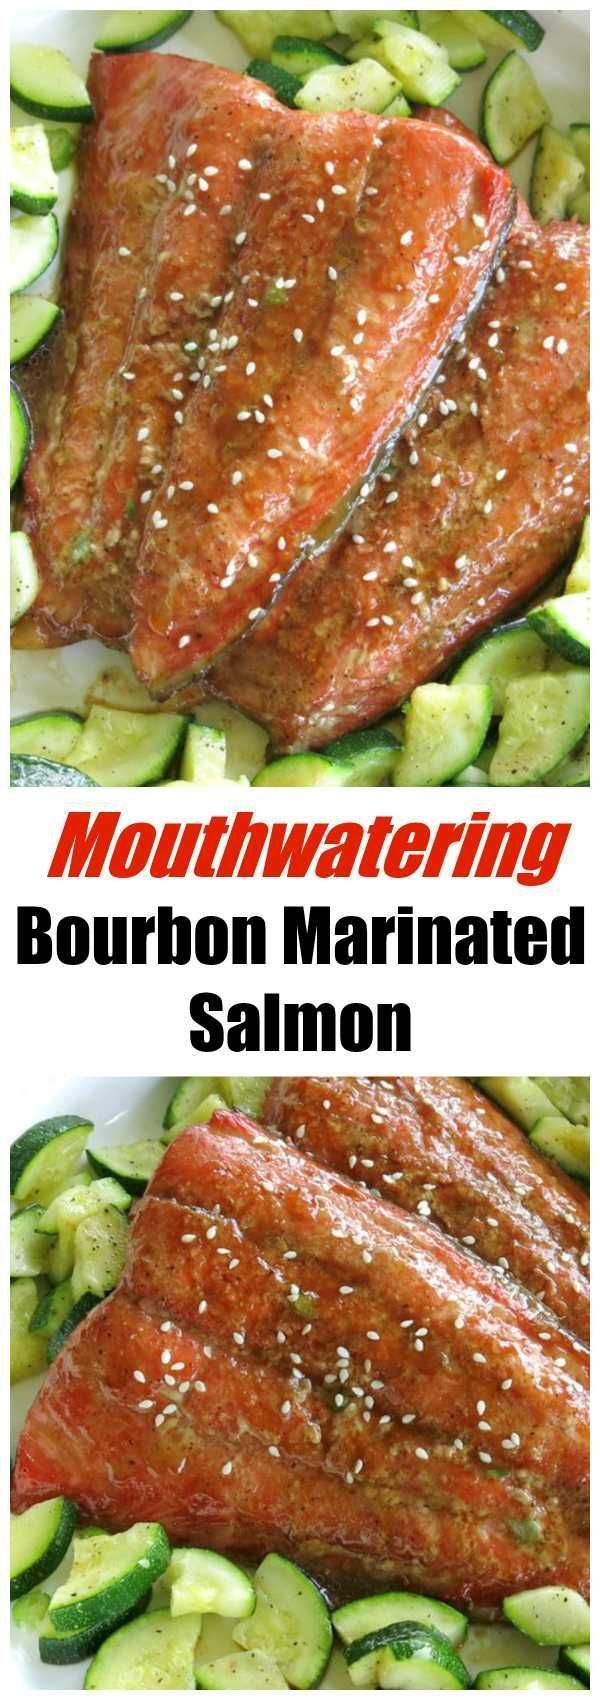 Easy Bourbon Marinated Salmon Recipe. The bourbon glaze is great on chicken and pork too. It's sweet with just the right amount of zing for a memorable dinner.